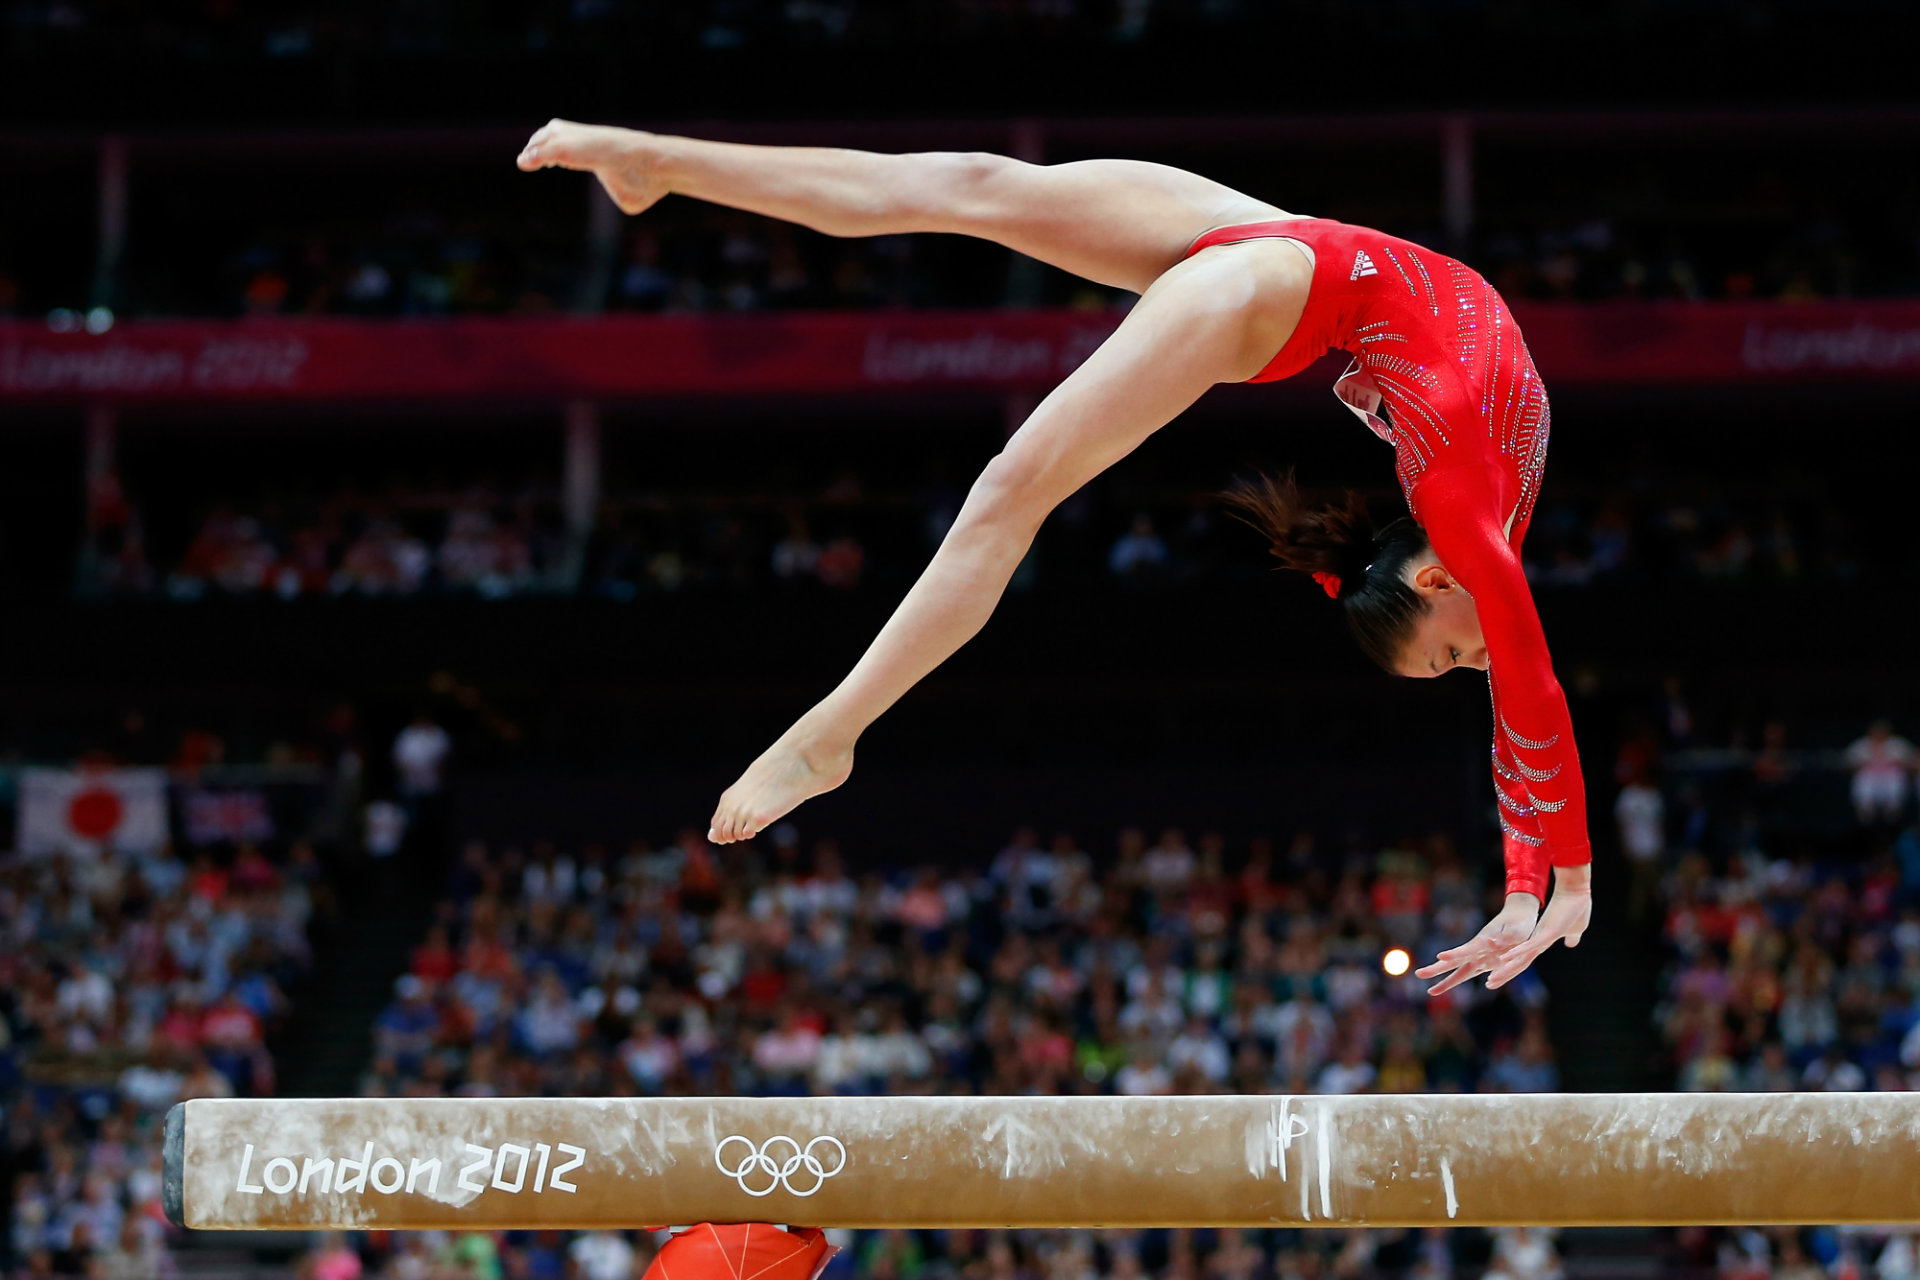 gymnast-wallpapers-63485-2639166